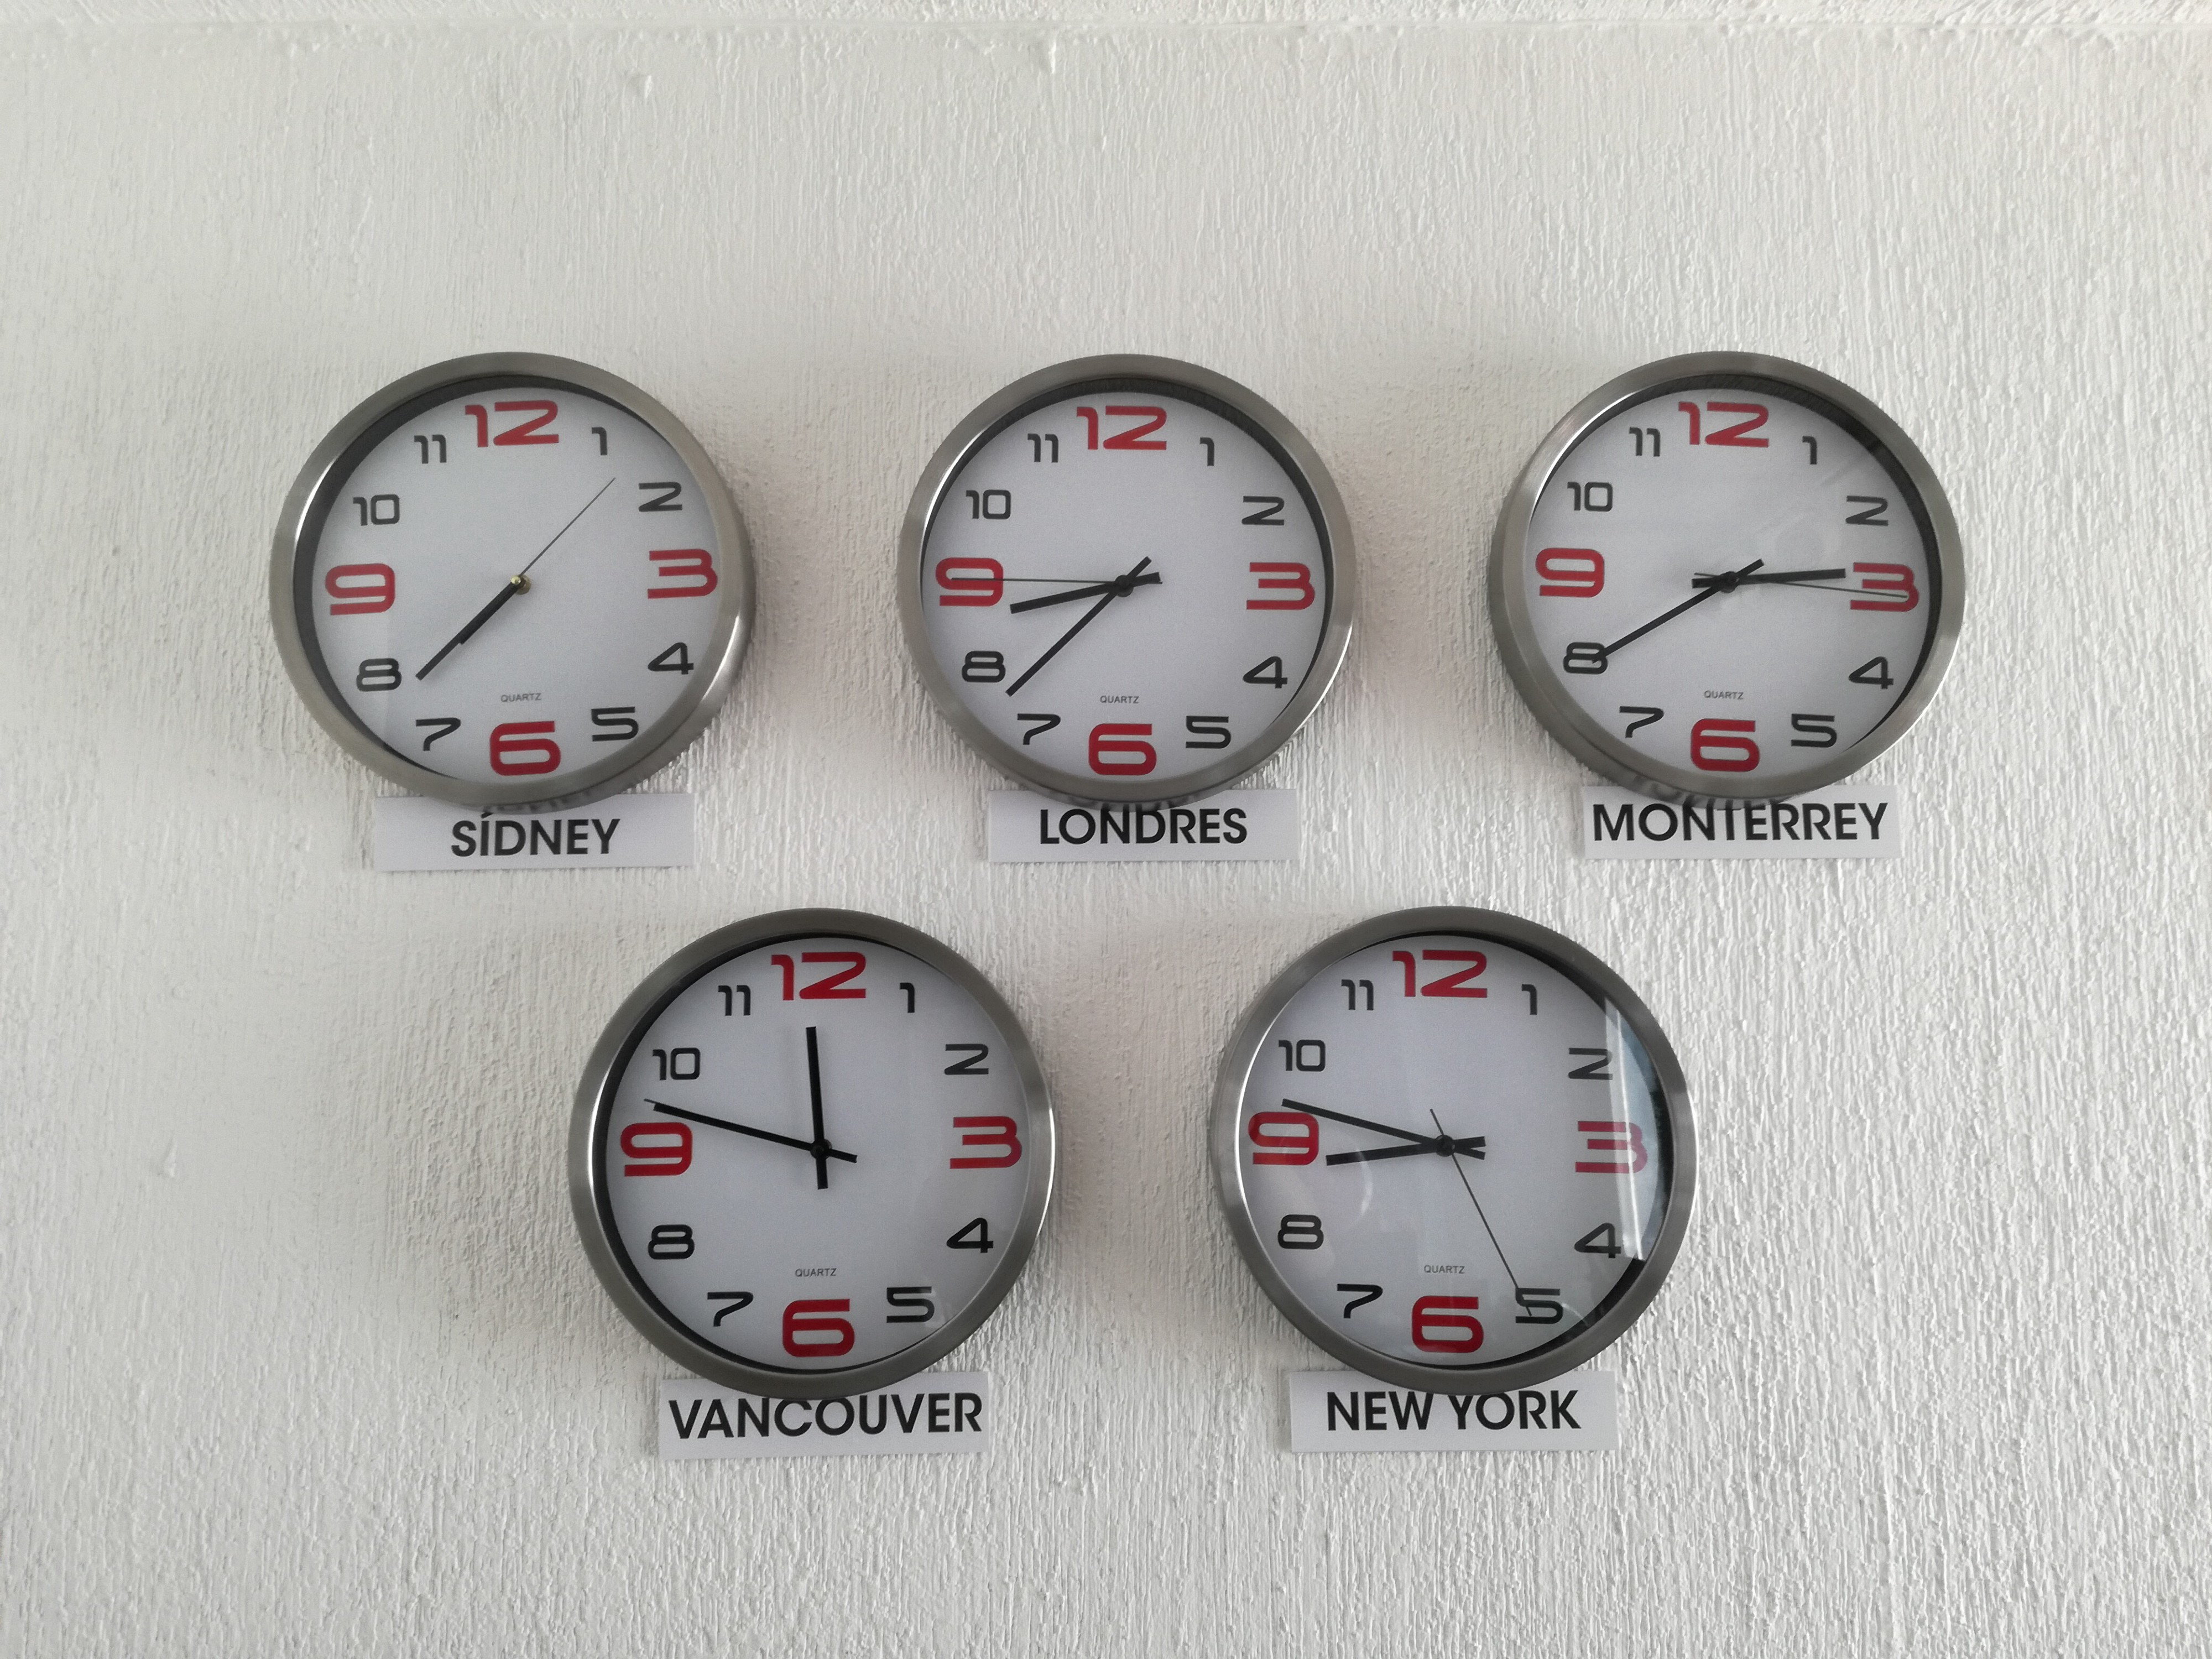 Five clocks hanging on a wall, pointing at different time zones.